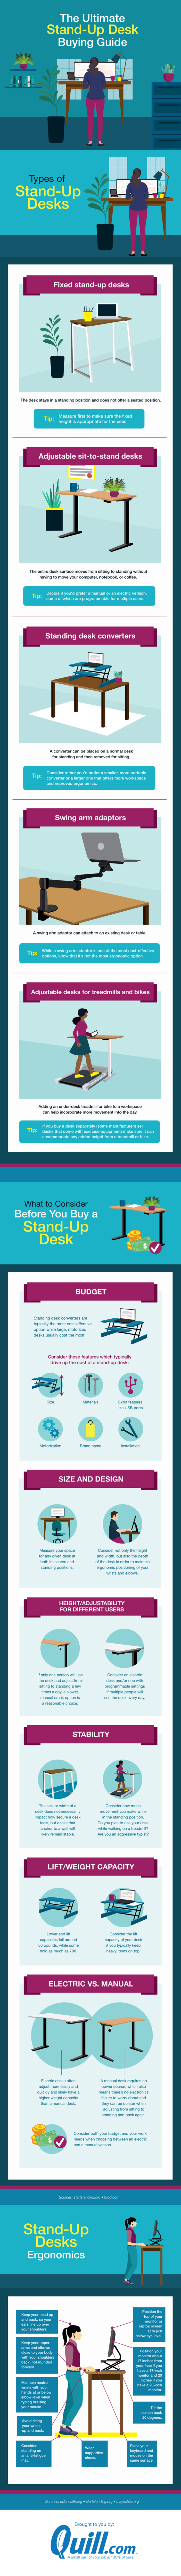 The ultimate stand-up desk buying guide